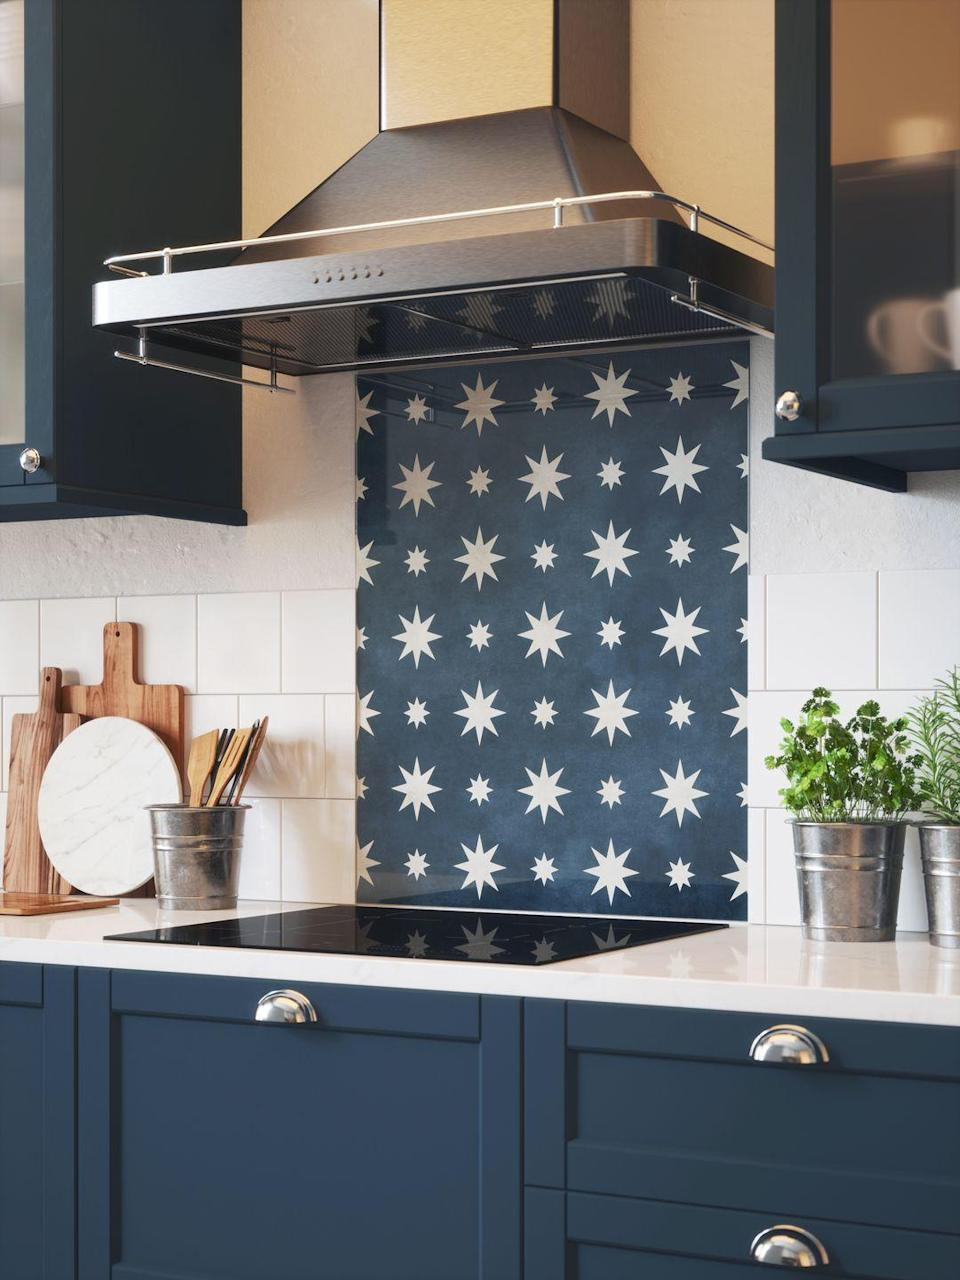 "<p>Individuality in modern kitchen design can be achieved with a feature splashback – an ideal way to make a statement. You can continue your kitchen colour scheme through to the walls and splashback for greater intensity and vibrancy.</p><p>Melissa Klink, Head of Design at <a href=""https://www.harveyjones.com/"" rel=""nofollow noopener"" target=""_blank"" data-ylk=""slk:Harvey Jones"" class=""link rapid-noclick-resp"">Harvey Jones</a>, says splashbacks are perfect for instant wow factor. 'Because the application isn't being used as the main worktop, this opens up a variety of other options like specialised marble and other porous stone. Slab splashbacks are a great way to dictate the colour palette of the room and reflect the light in a soft fashion.'<br></p><p>Pictured: Jasper in Indigo, House Beautiful Kitchen Glass Splashback at <a href=""https://www.splashback.co.uk/shop/designer-splashbacks/house-beautiful/house-beautiful-jasper-splashback-600x750mm/"" rel=""nofollow noopener"" target=""_blank"" data-ylk=""slk:Splashback.co.uk"" class=""link rapid-noclick-resp"">Splashback.co.uk</a></p>"